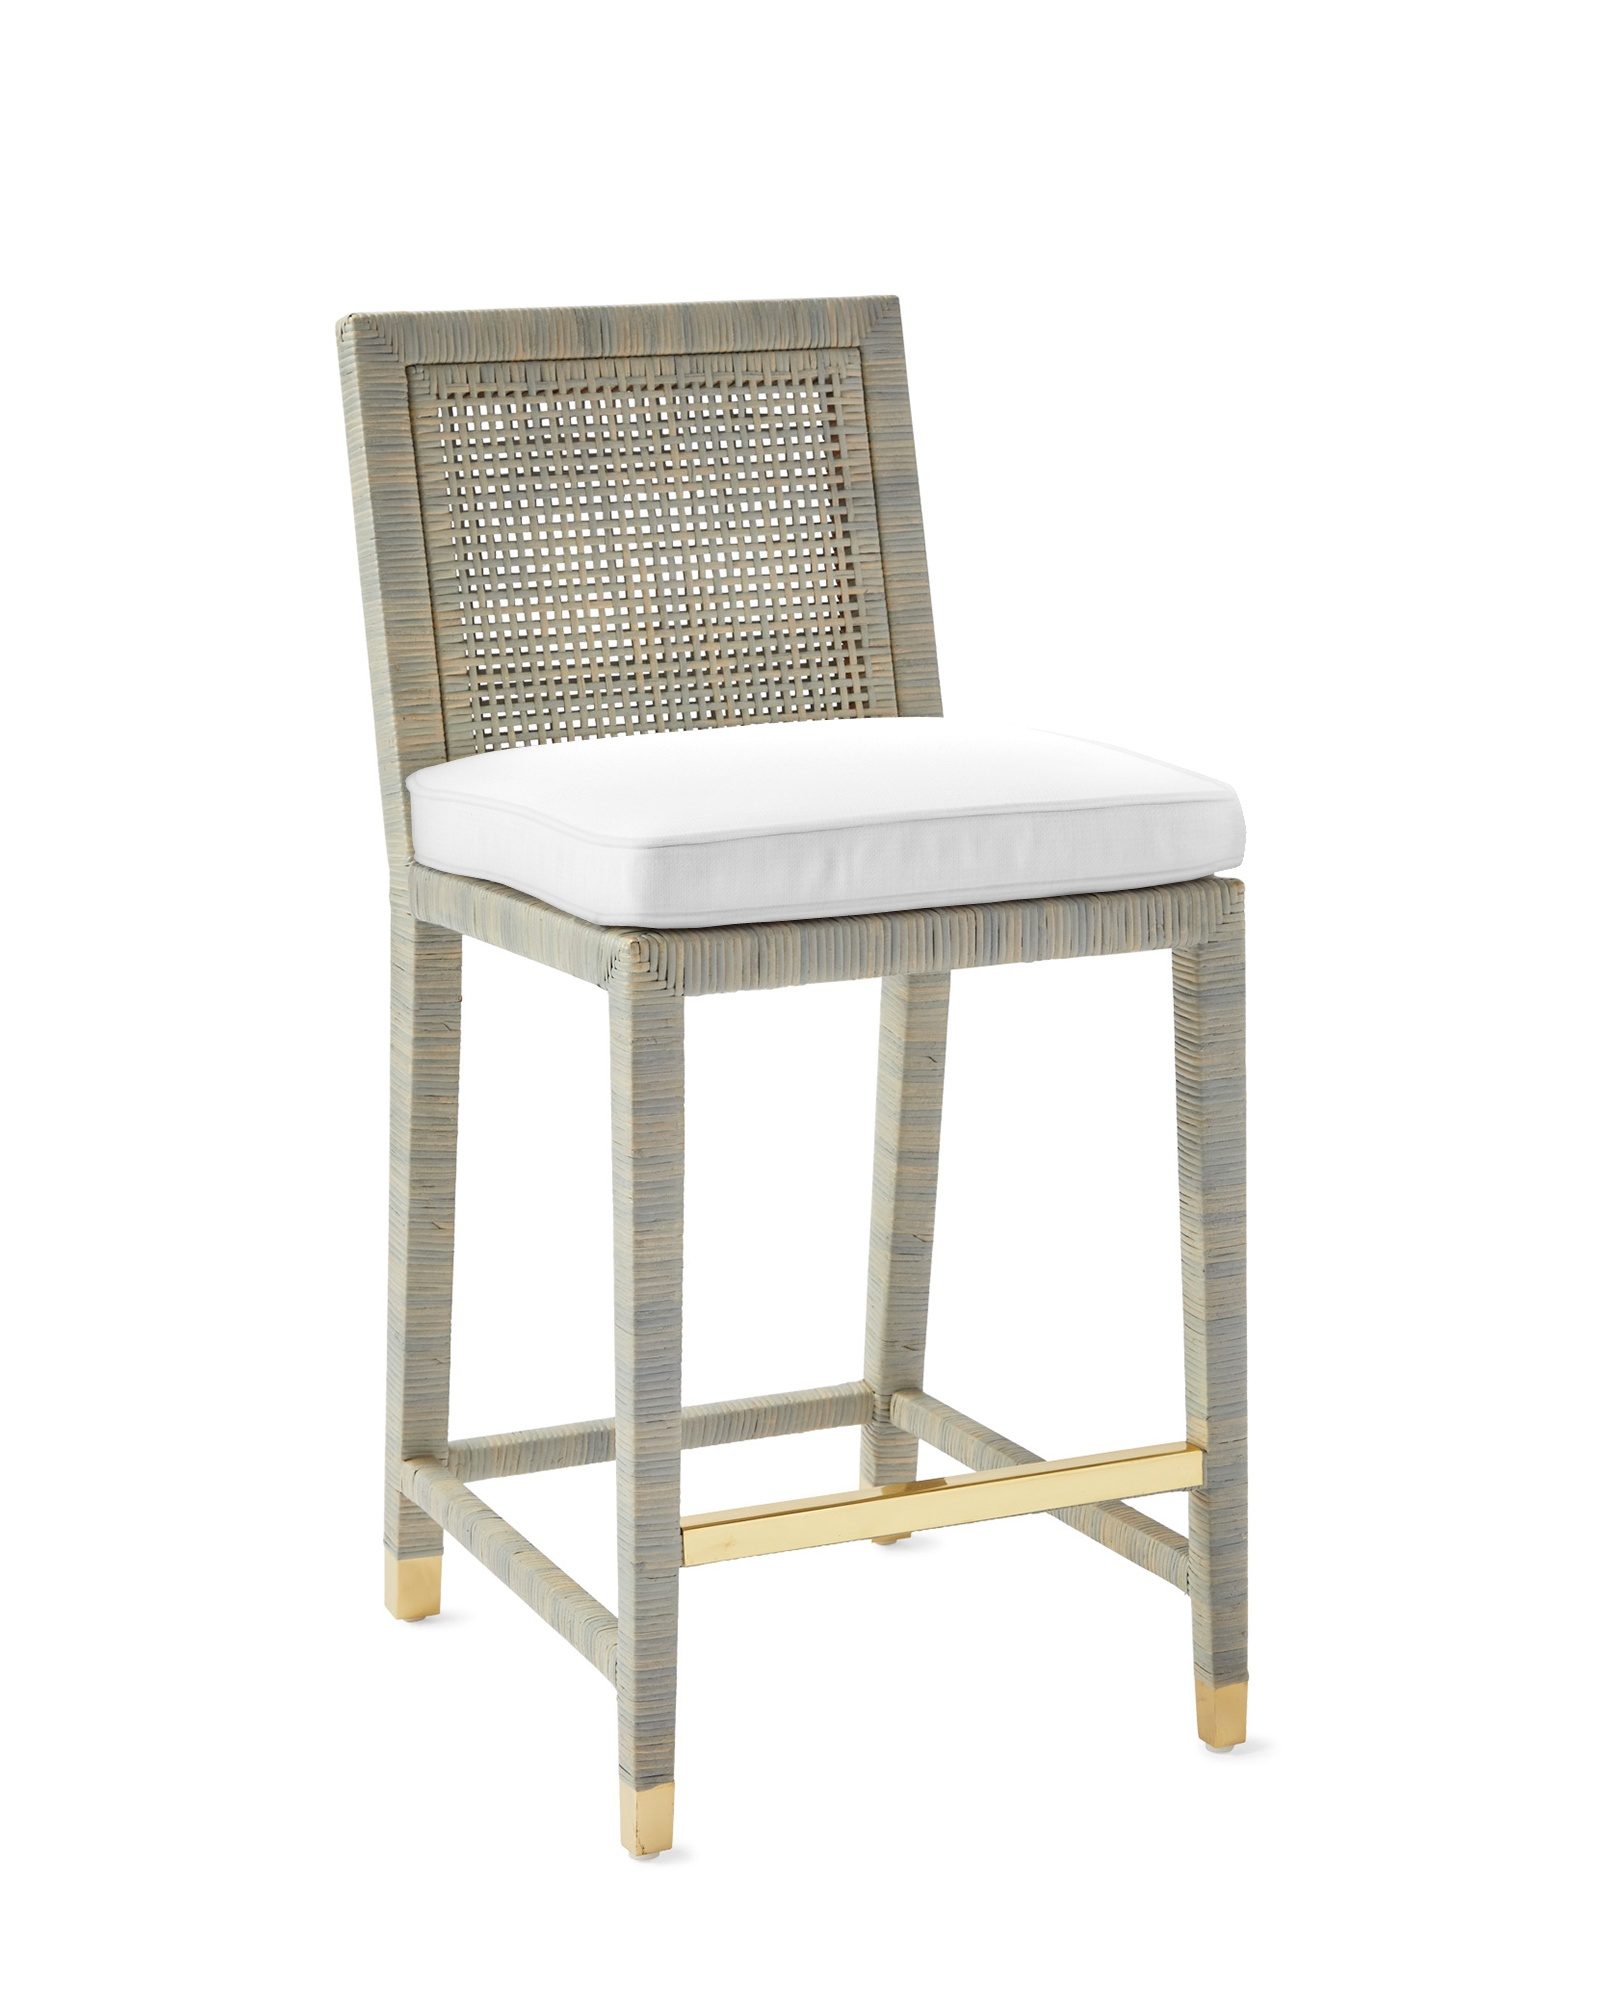 Balboa Counter Stool - Mist